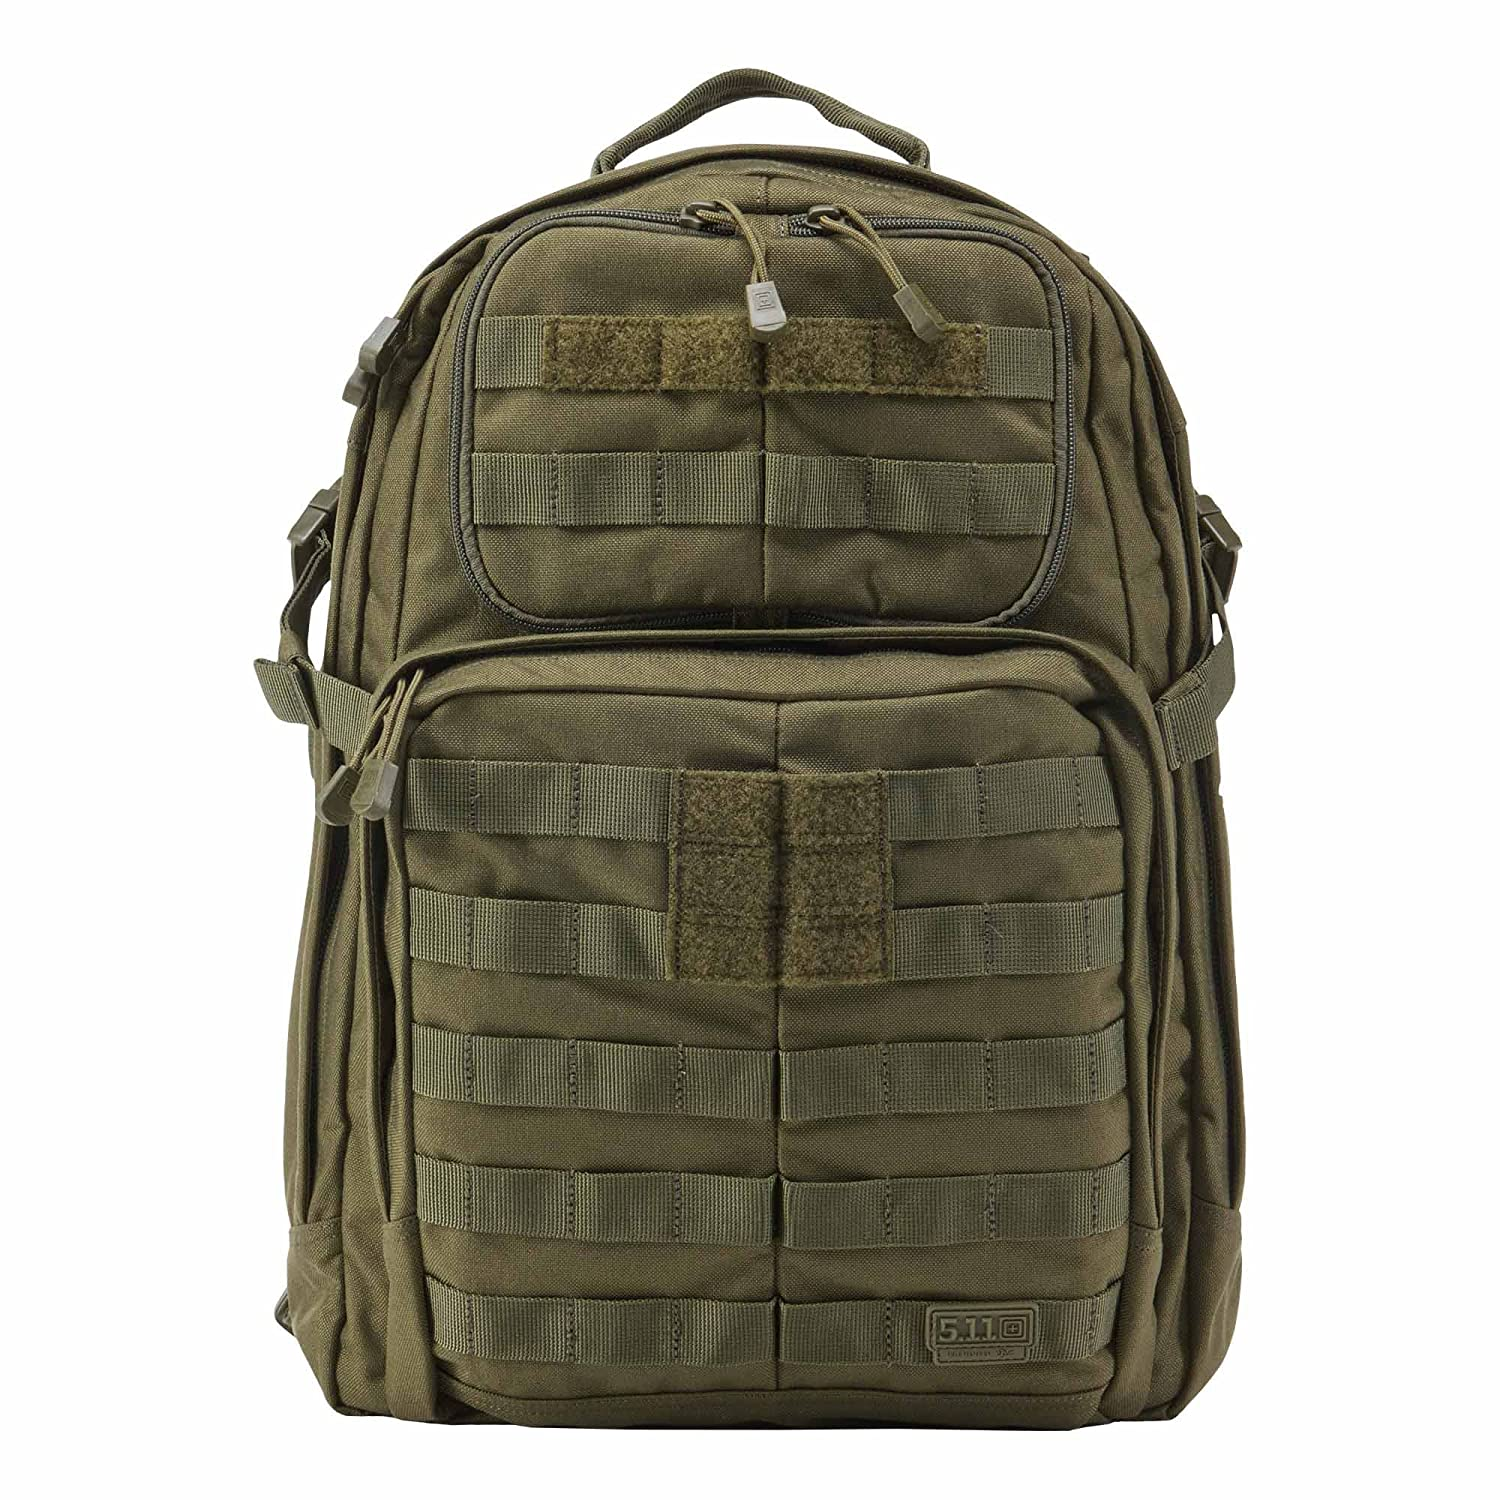 5.11 RUSH24 Backpack 5.11 Tactical Series 58601-019